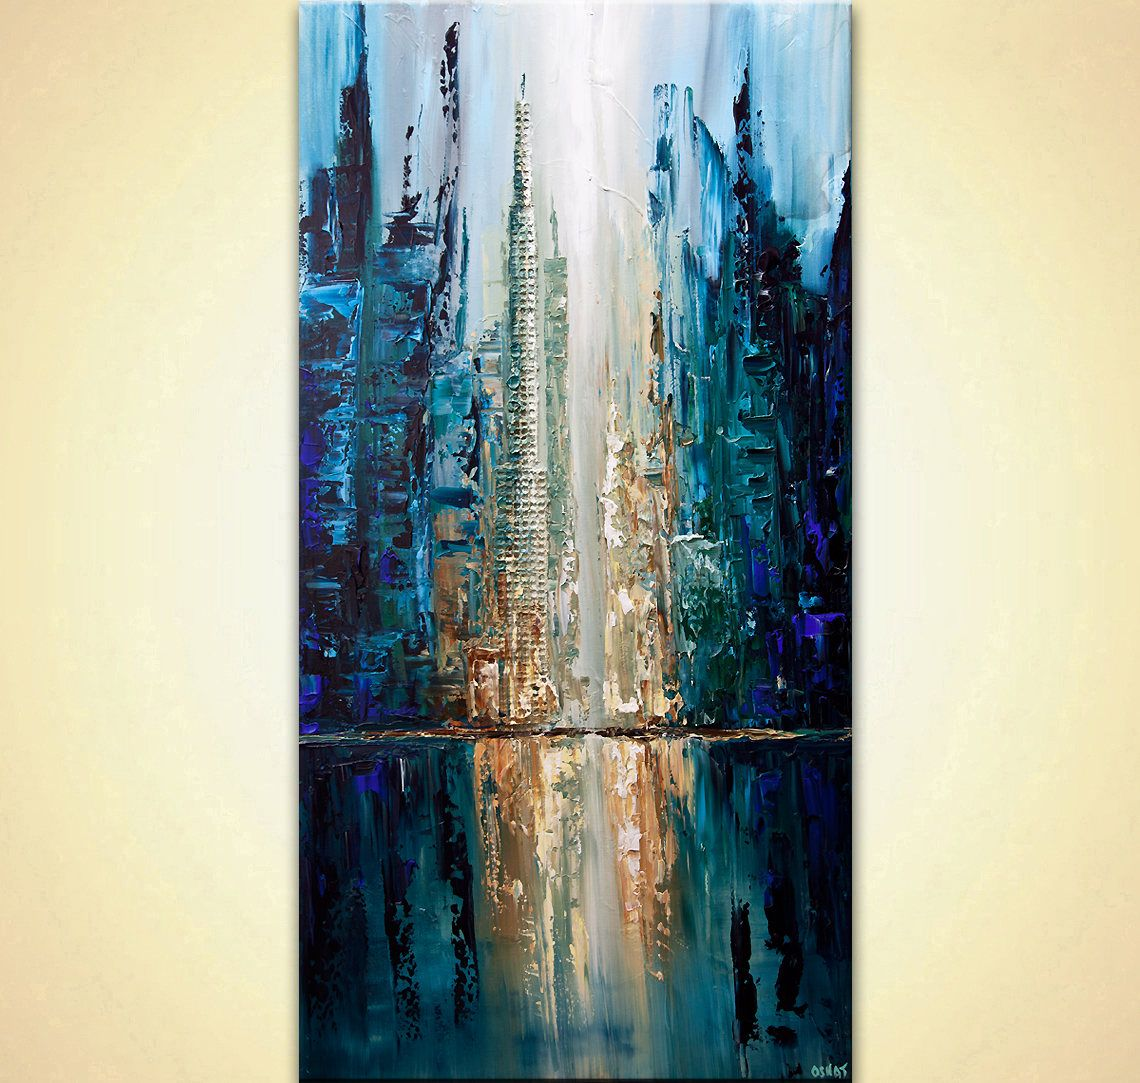 Aprender A Pintar Cuadros Modernos Abstract Art Large City Abstract Painting Blue City